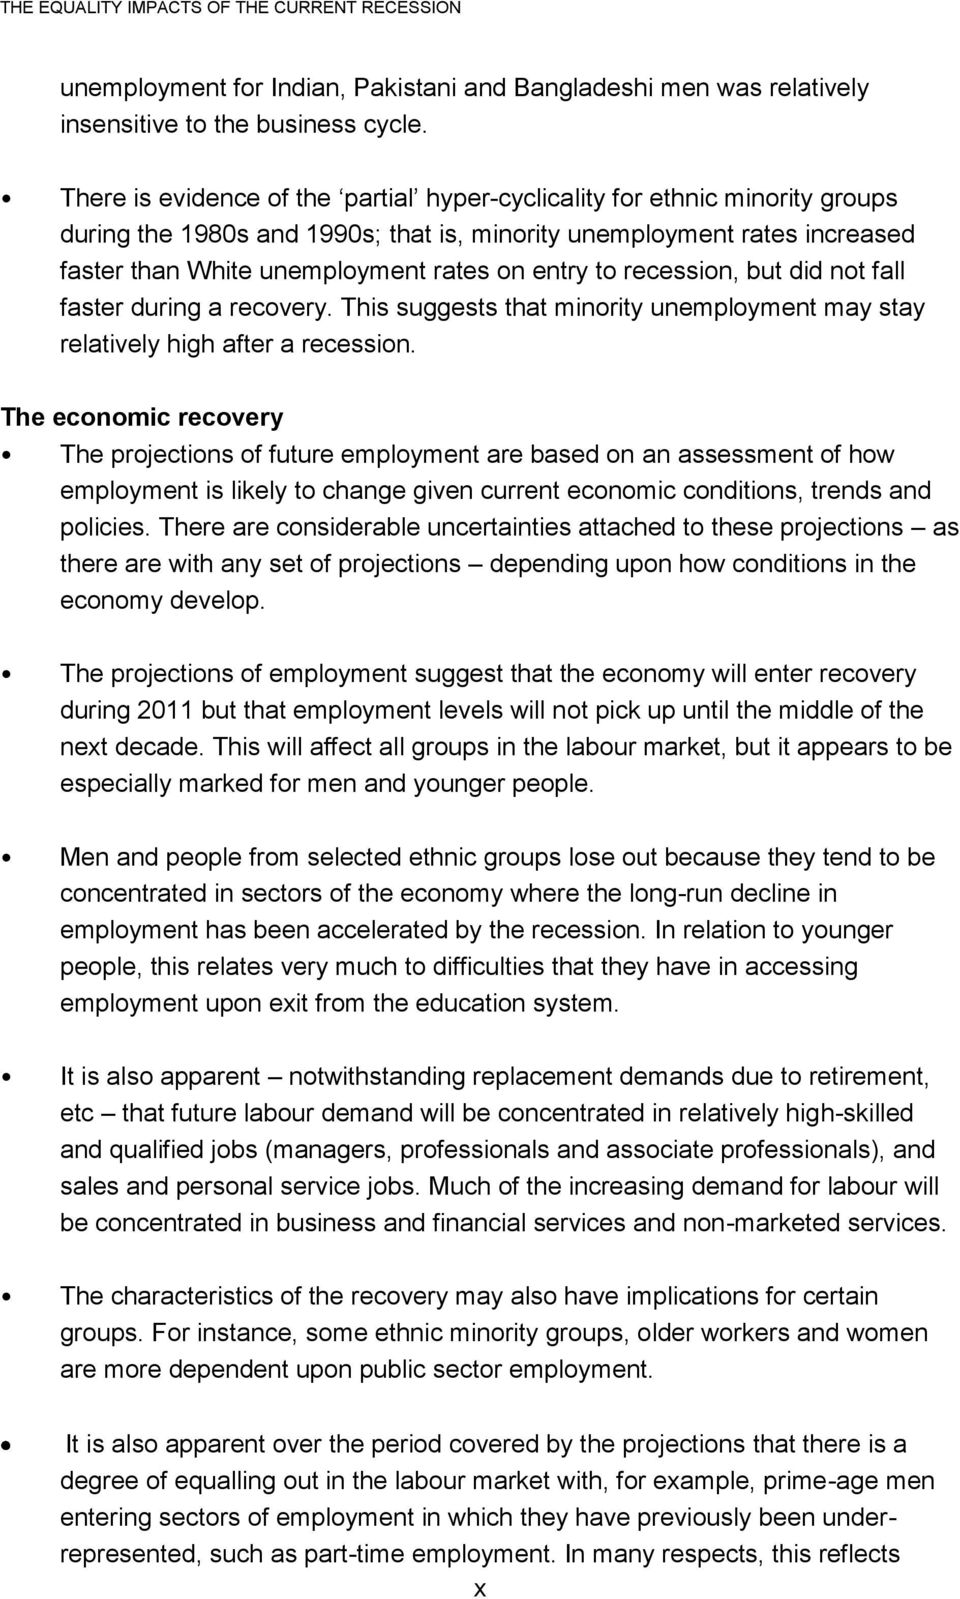 to recession, but did not fall faster during a recovery. This suggests that minority unemployment may stay relatively high after a recession.